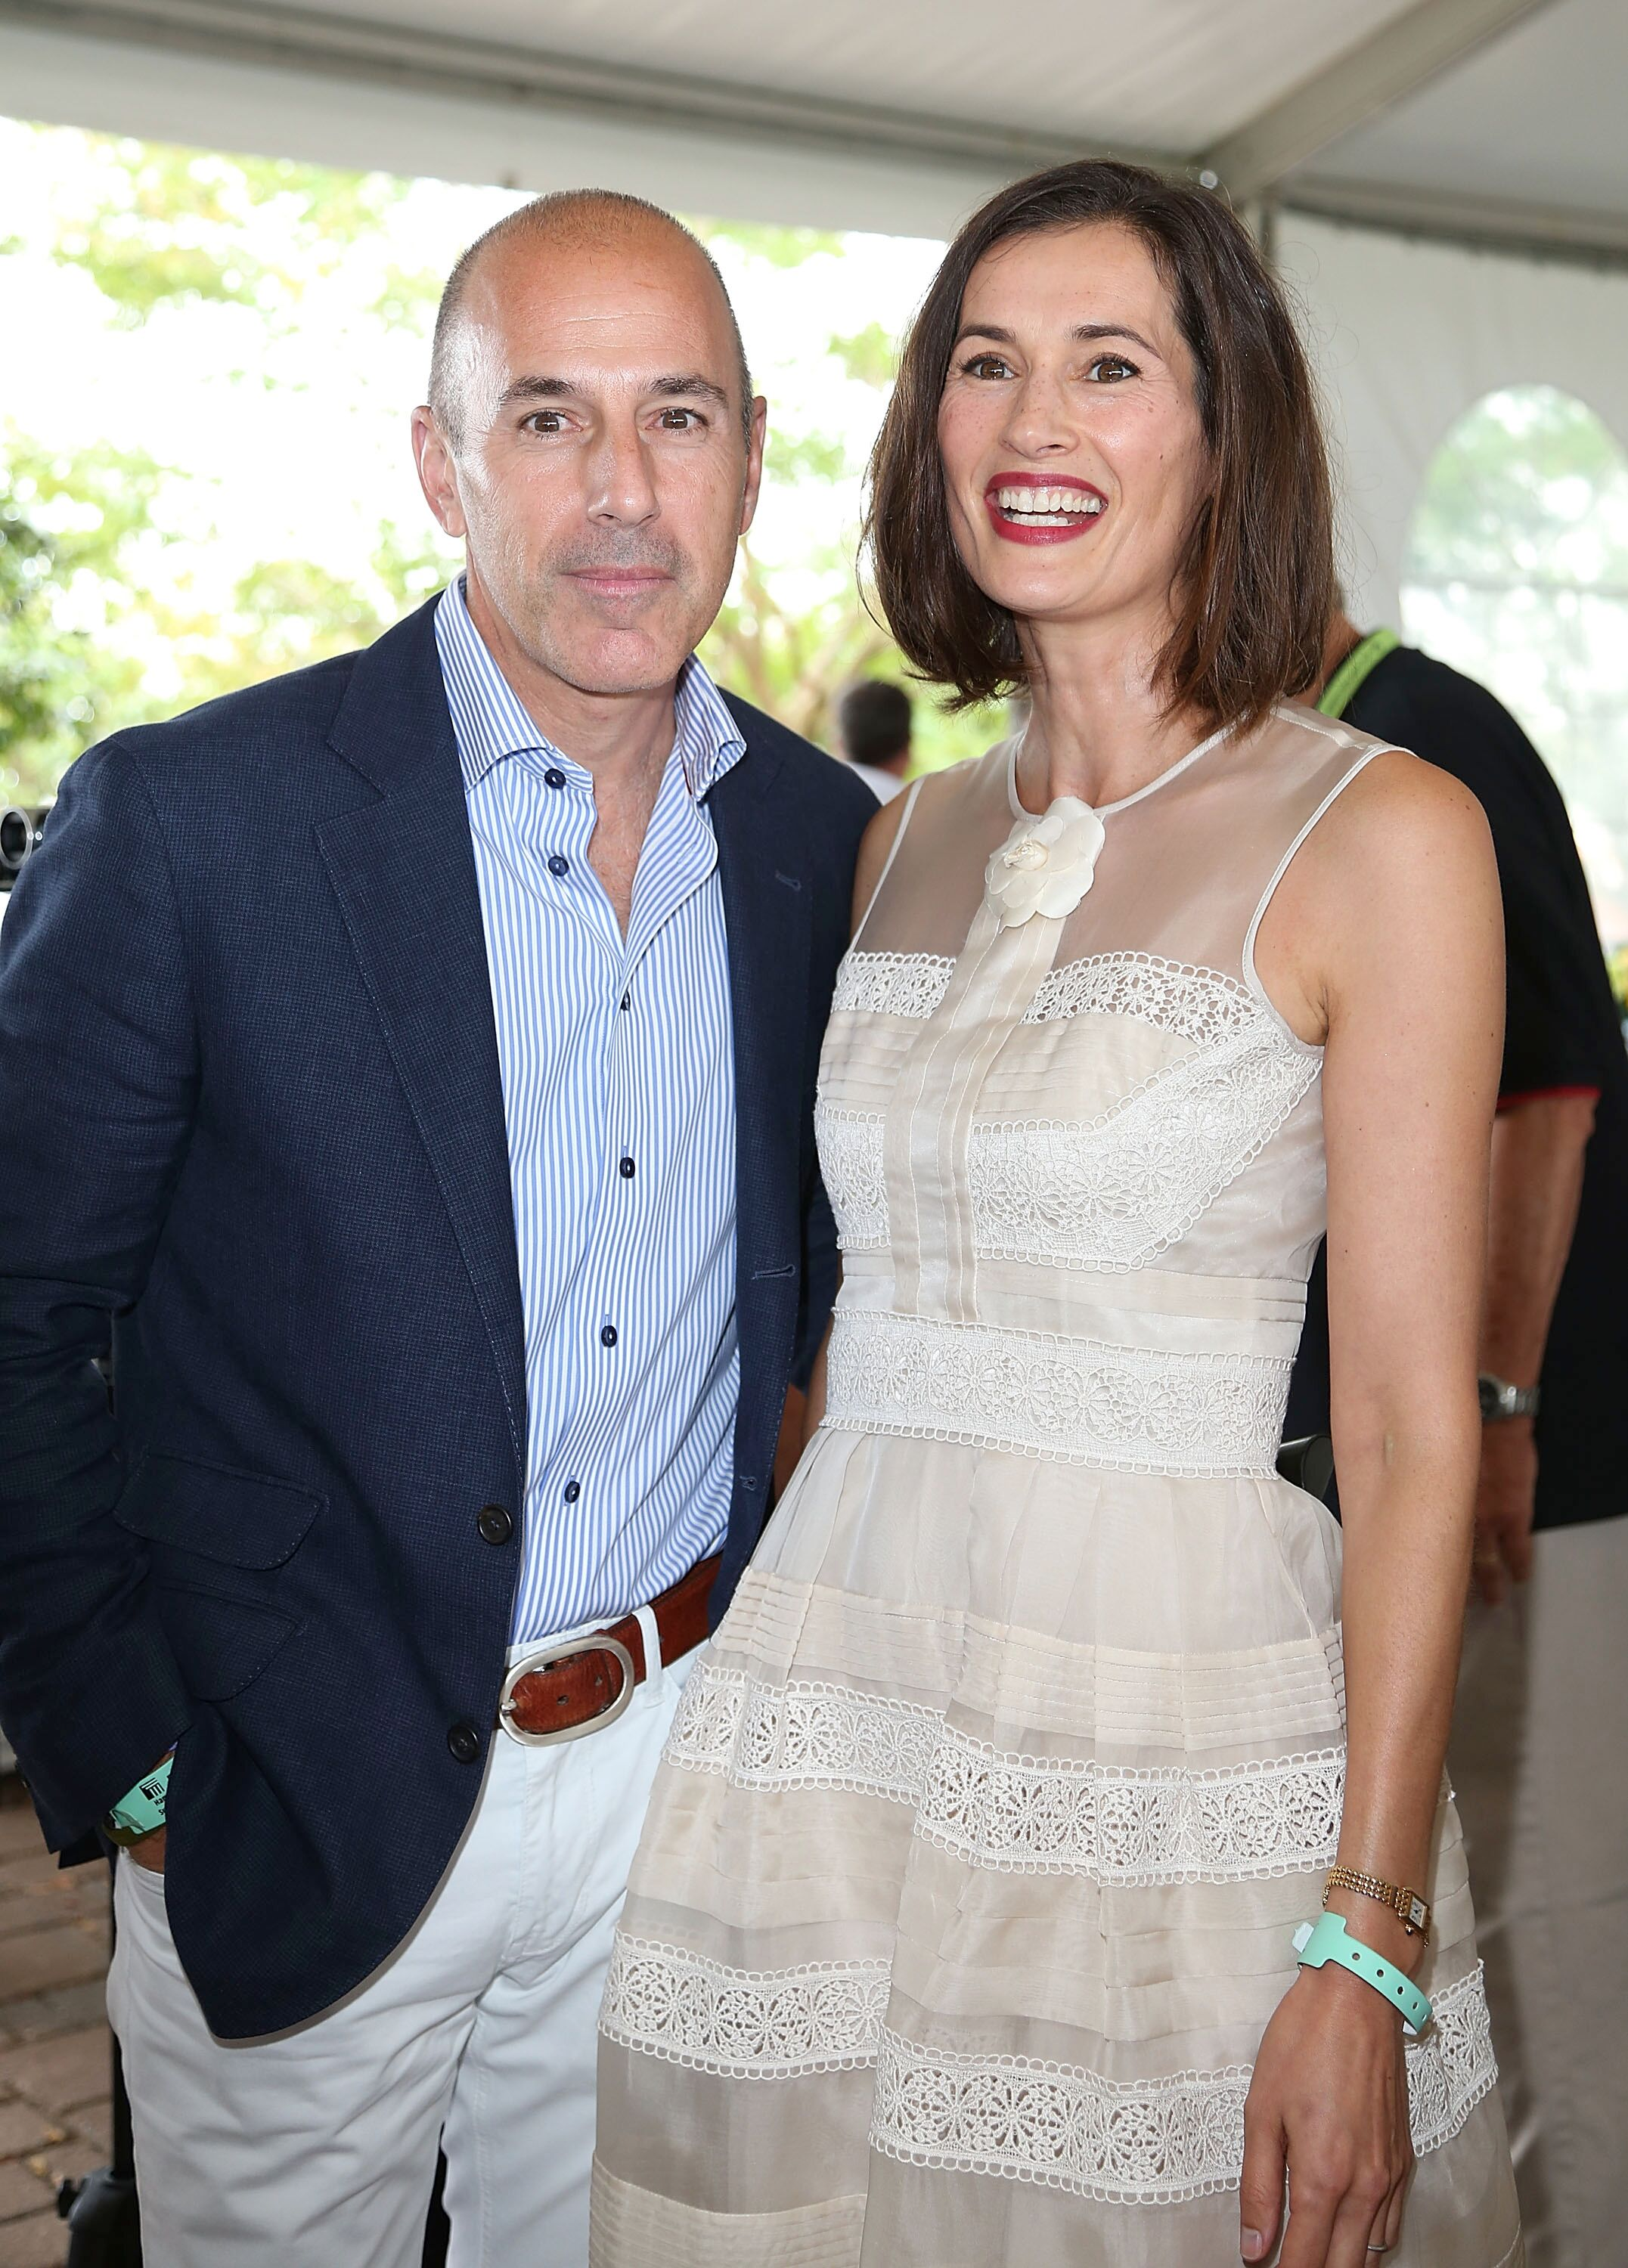 Matt Lauer and wife Annette Roque Lauer at the 38th Annual Hampton Classic Horse Show on September 1, 2013, in Bridgehampton, New York   Photo: Sonia Moskowitz/Getty Images